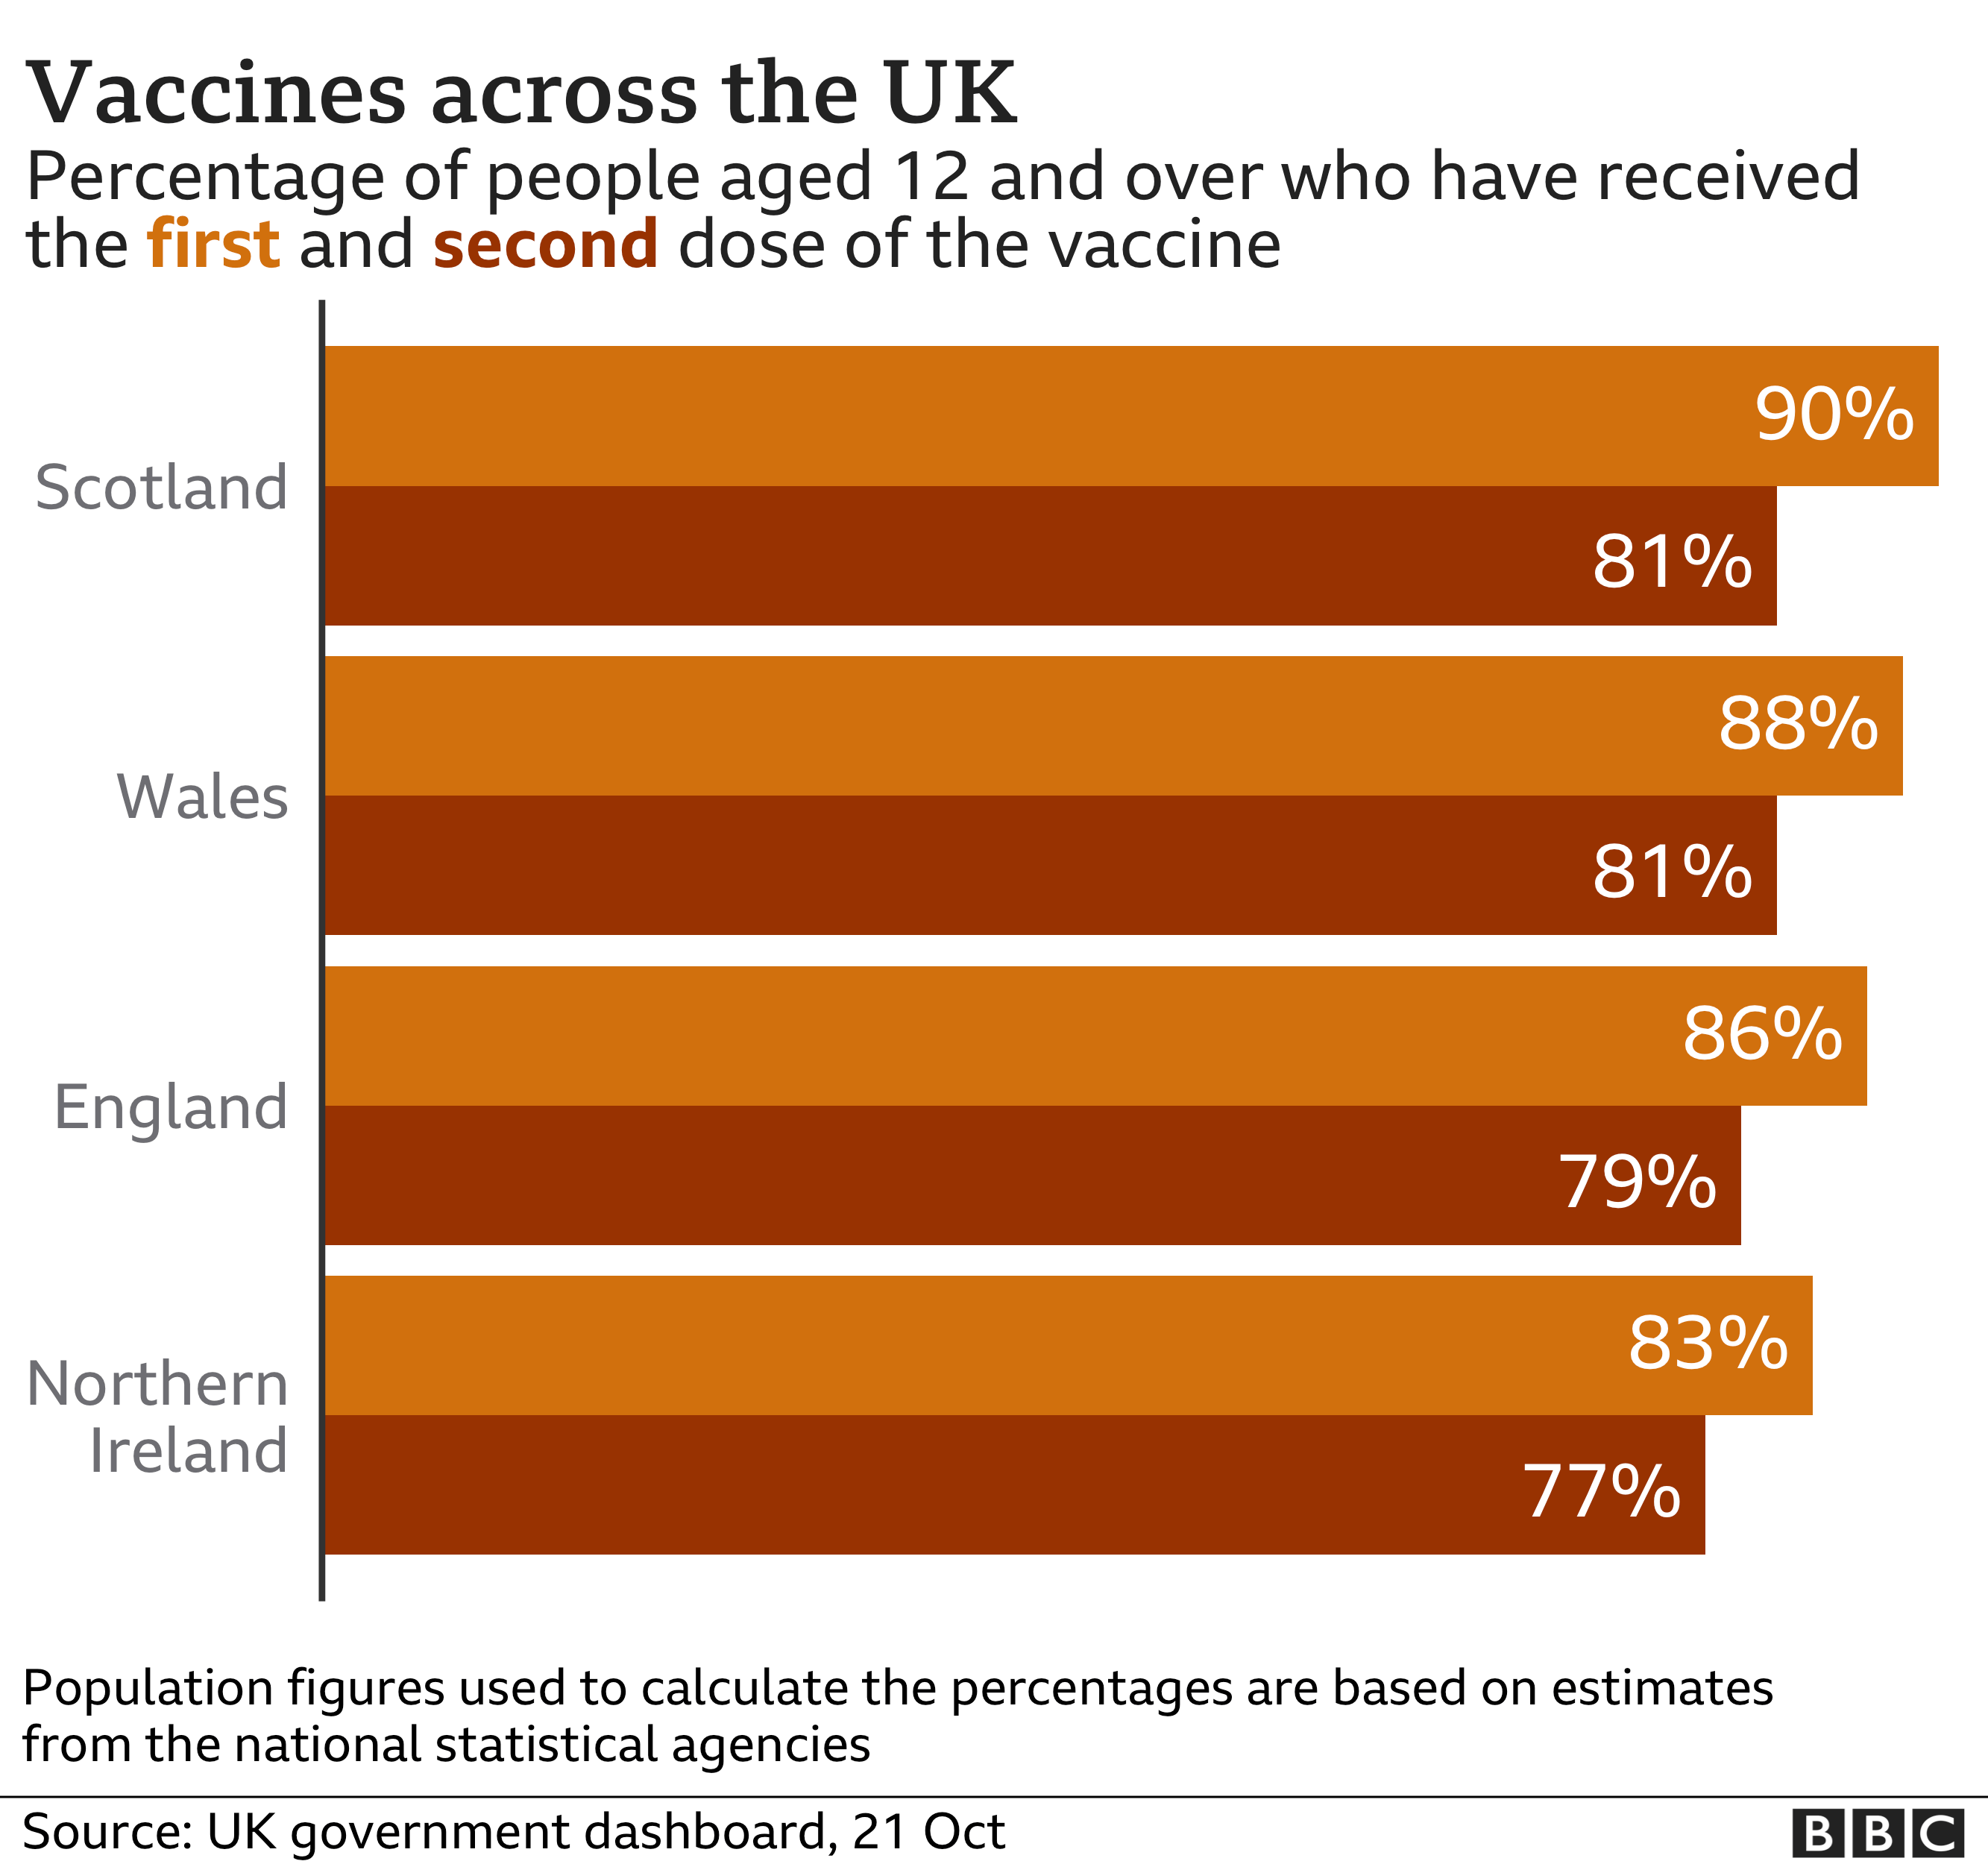 Chart of vaccine take up by UK nation - 90% of those aged 12 and over in Scotland have had at least one dose, compared with 88% in Wales, 86% in England and 83% in Northern Ireland